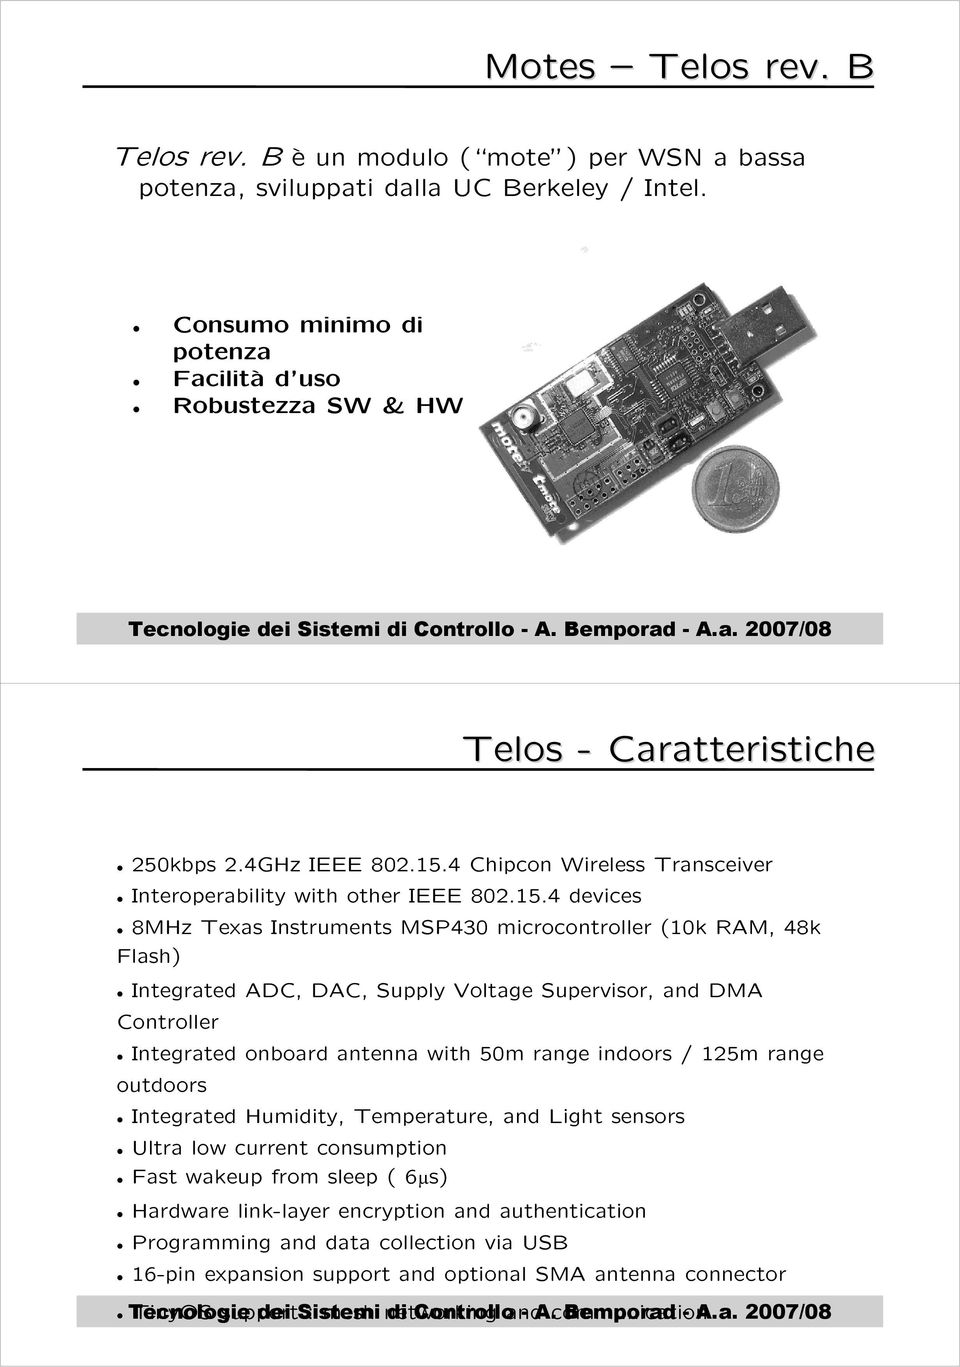 4 Chipcon Wireless Transceiver Interoperability with other IEEE 802.15.